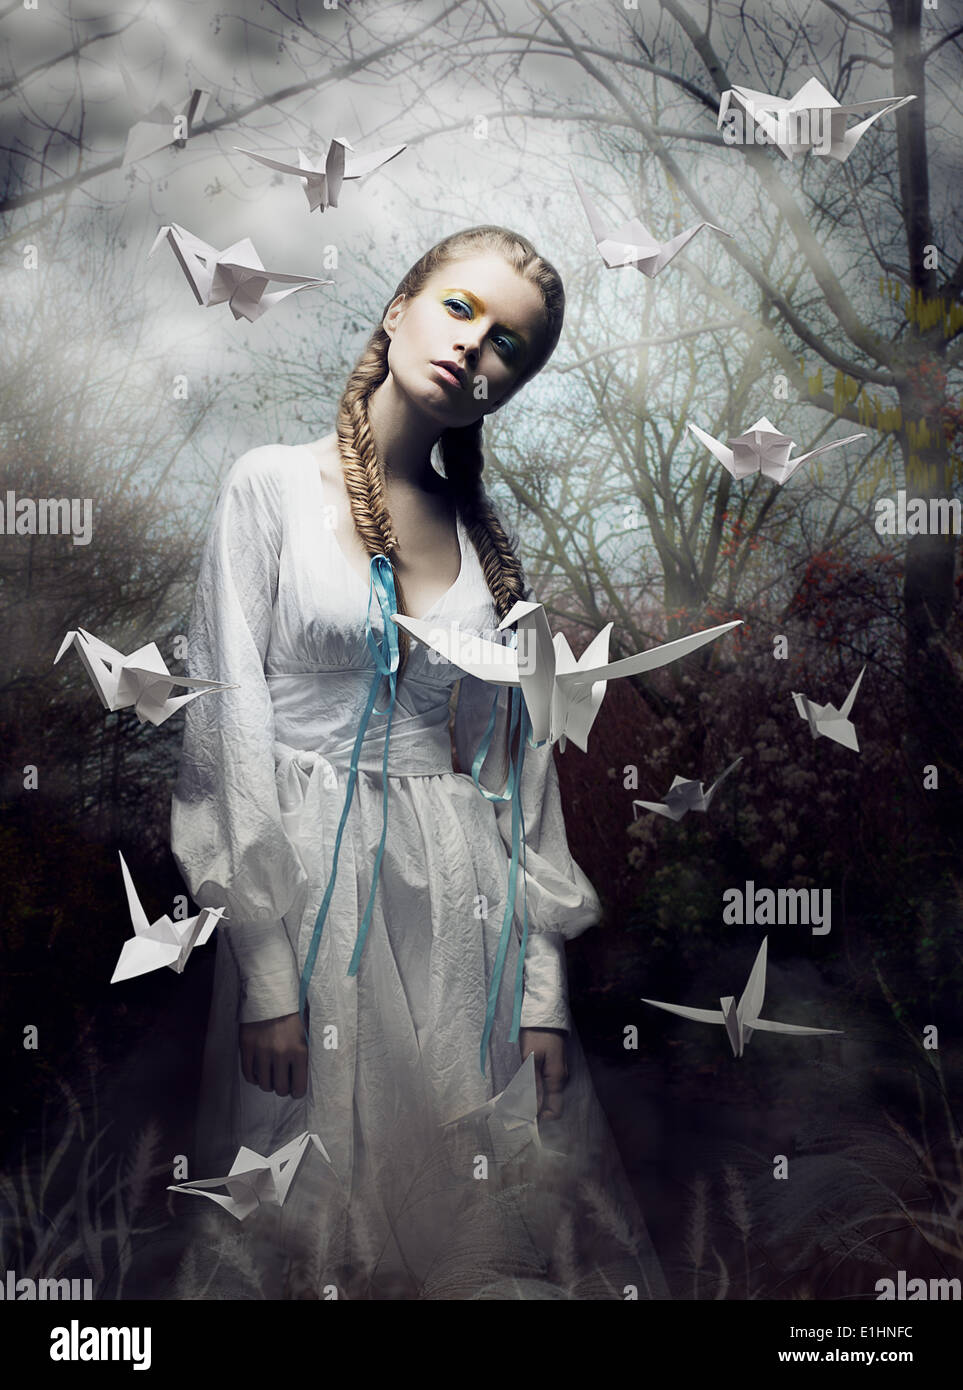 Mystery. Origami. Woman with White Paper Pigeon. Fairy Tale. Fantasy - Stock Image